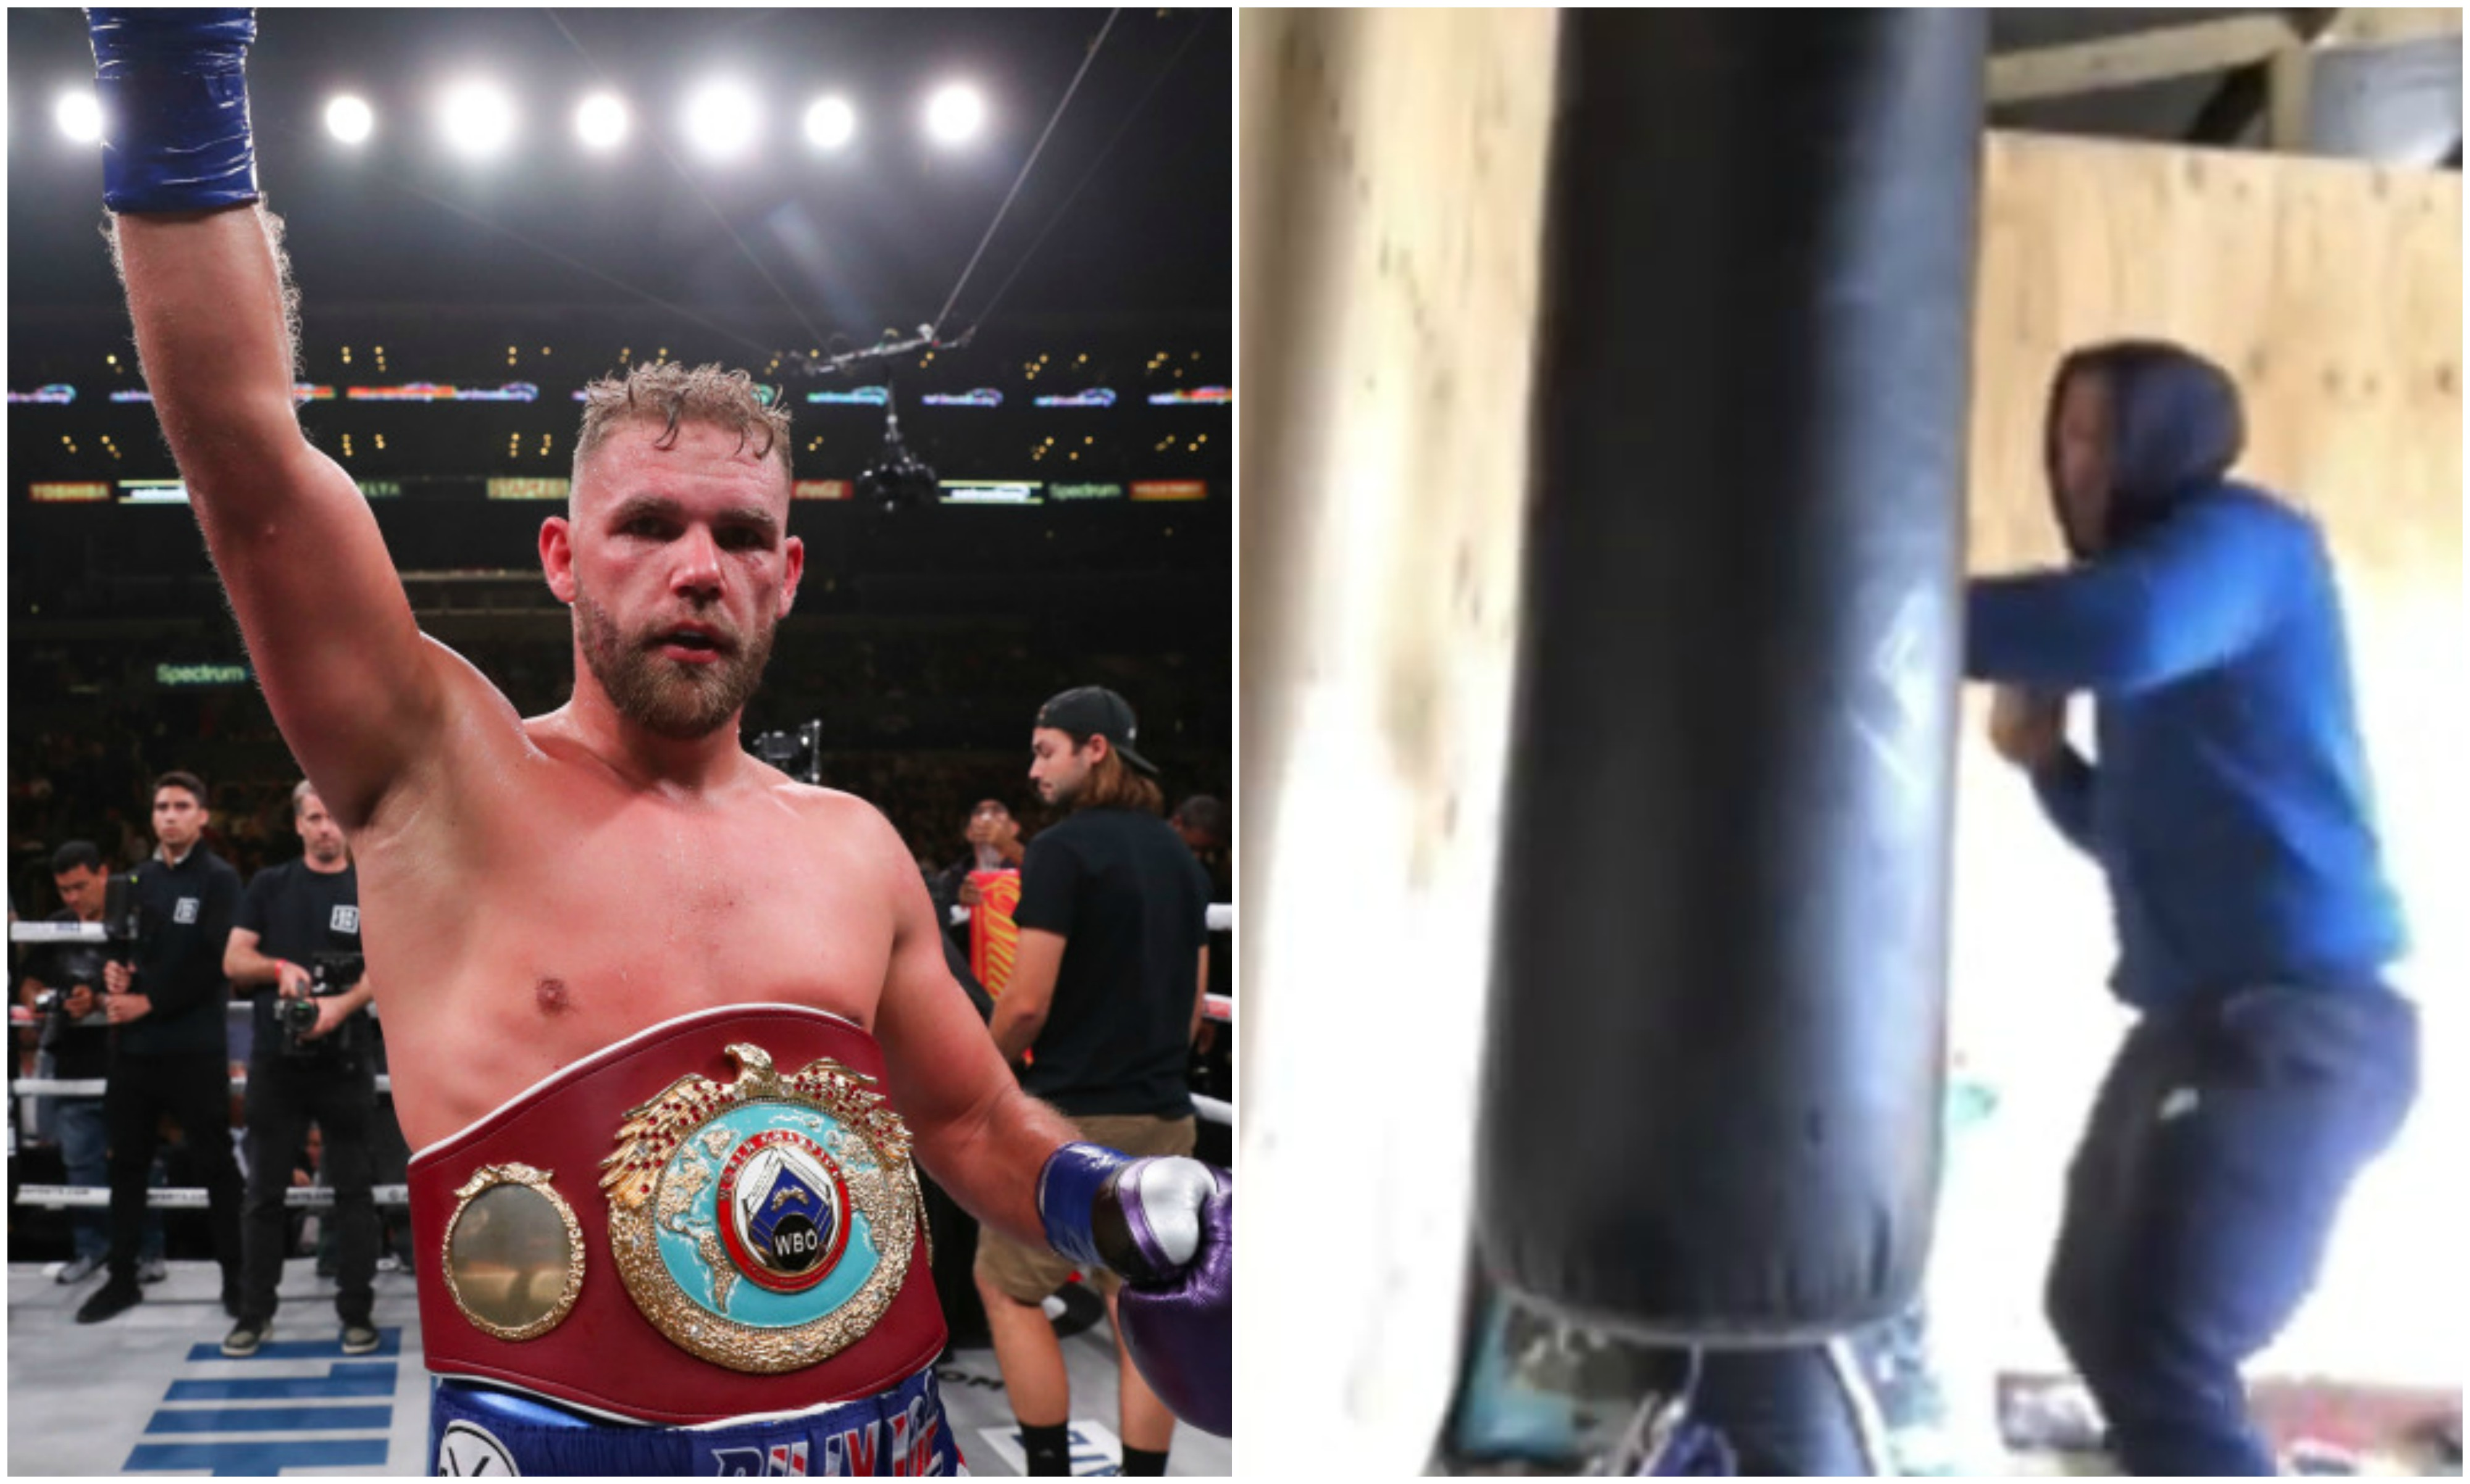 Watch: Billy Joe Saunders posts video on how to hit 'annoying' women at home, gets suspended - Billy Joe Saunders